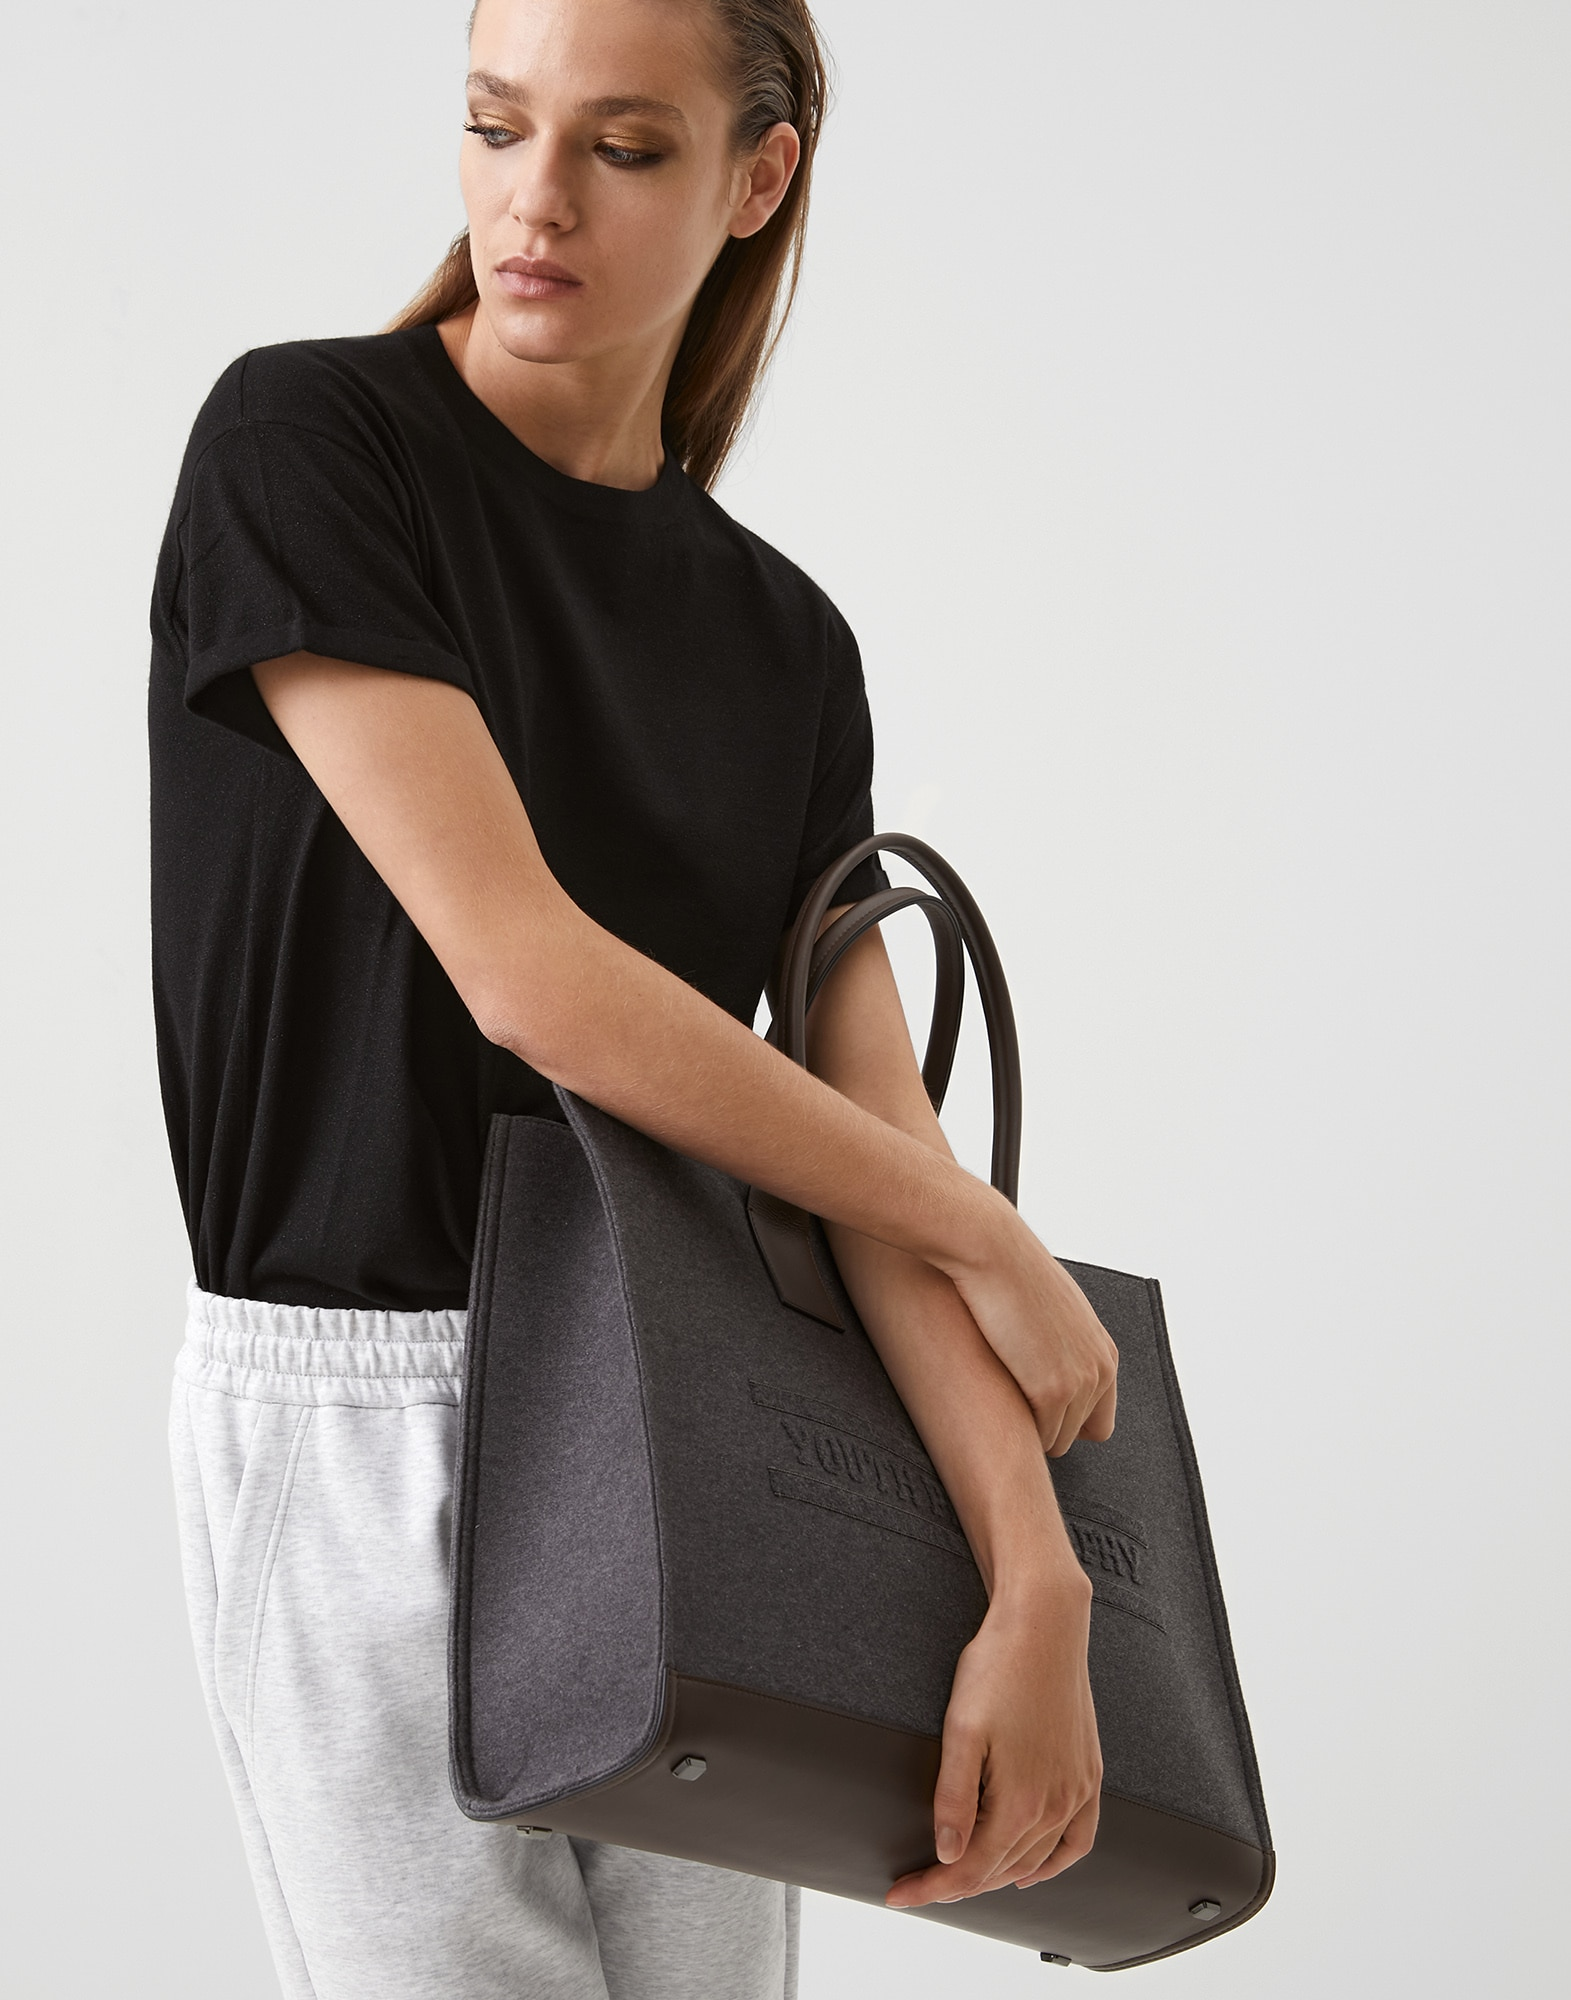 Shopper Bag Dark Grey Woman 4 - Brunello Cucinelli